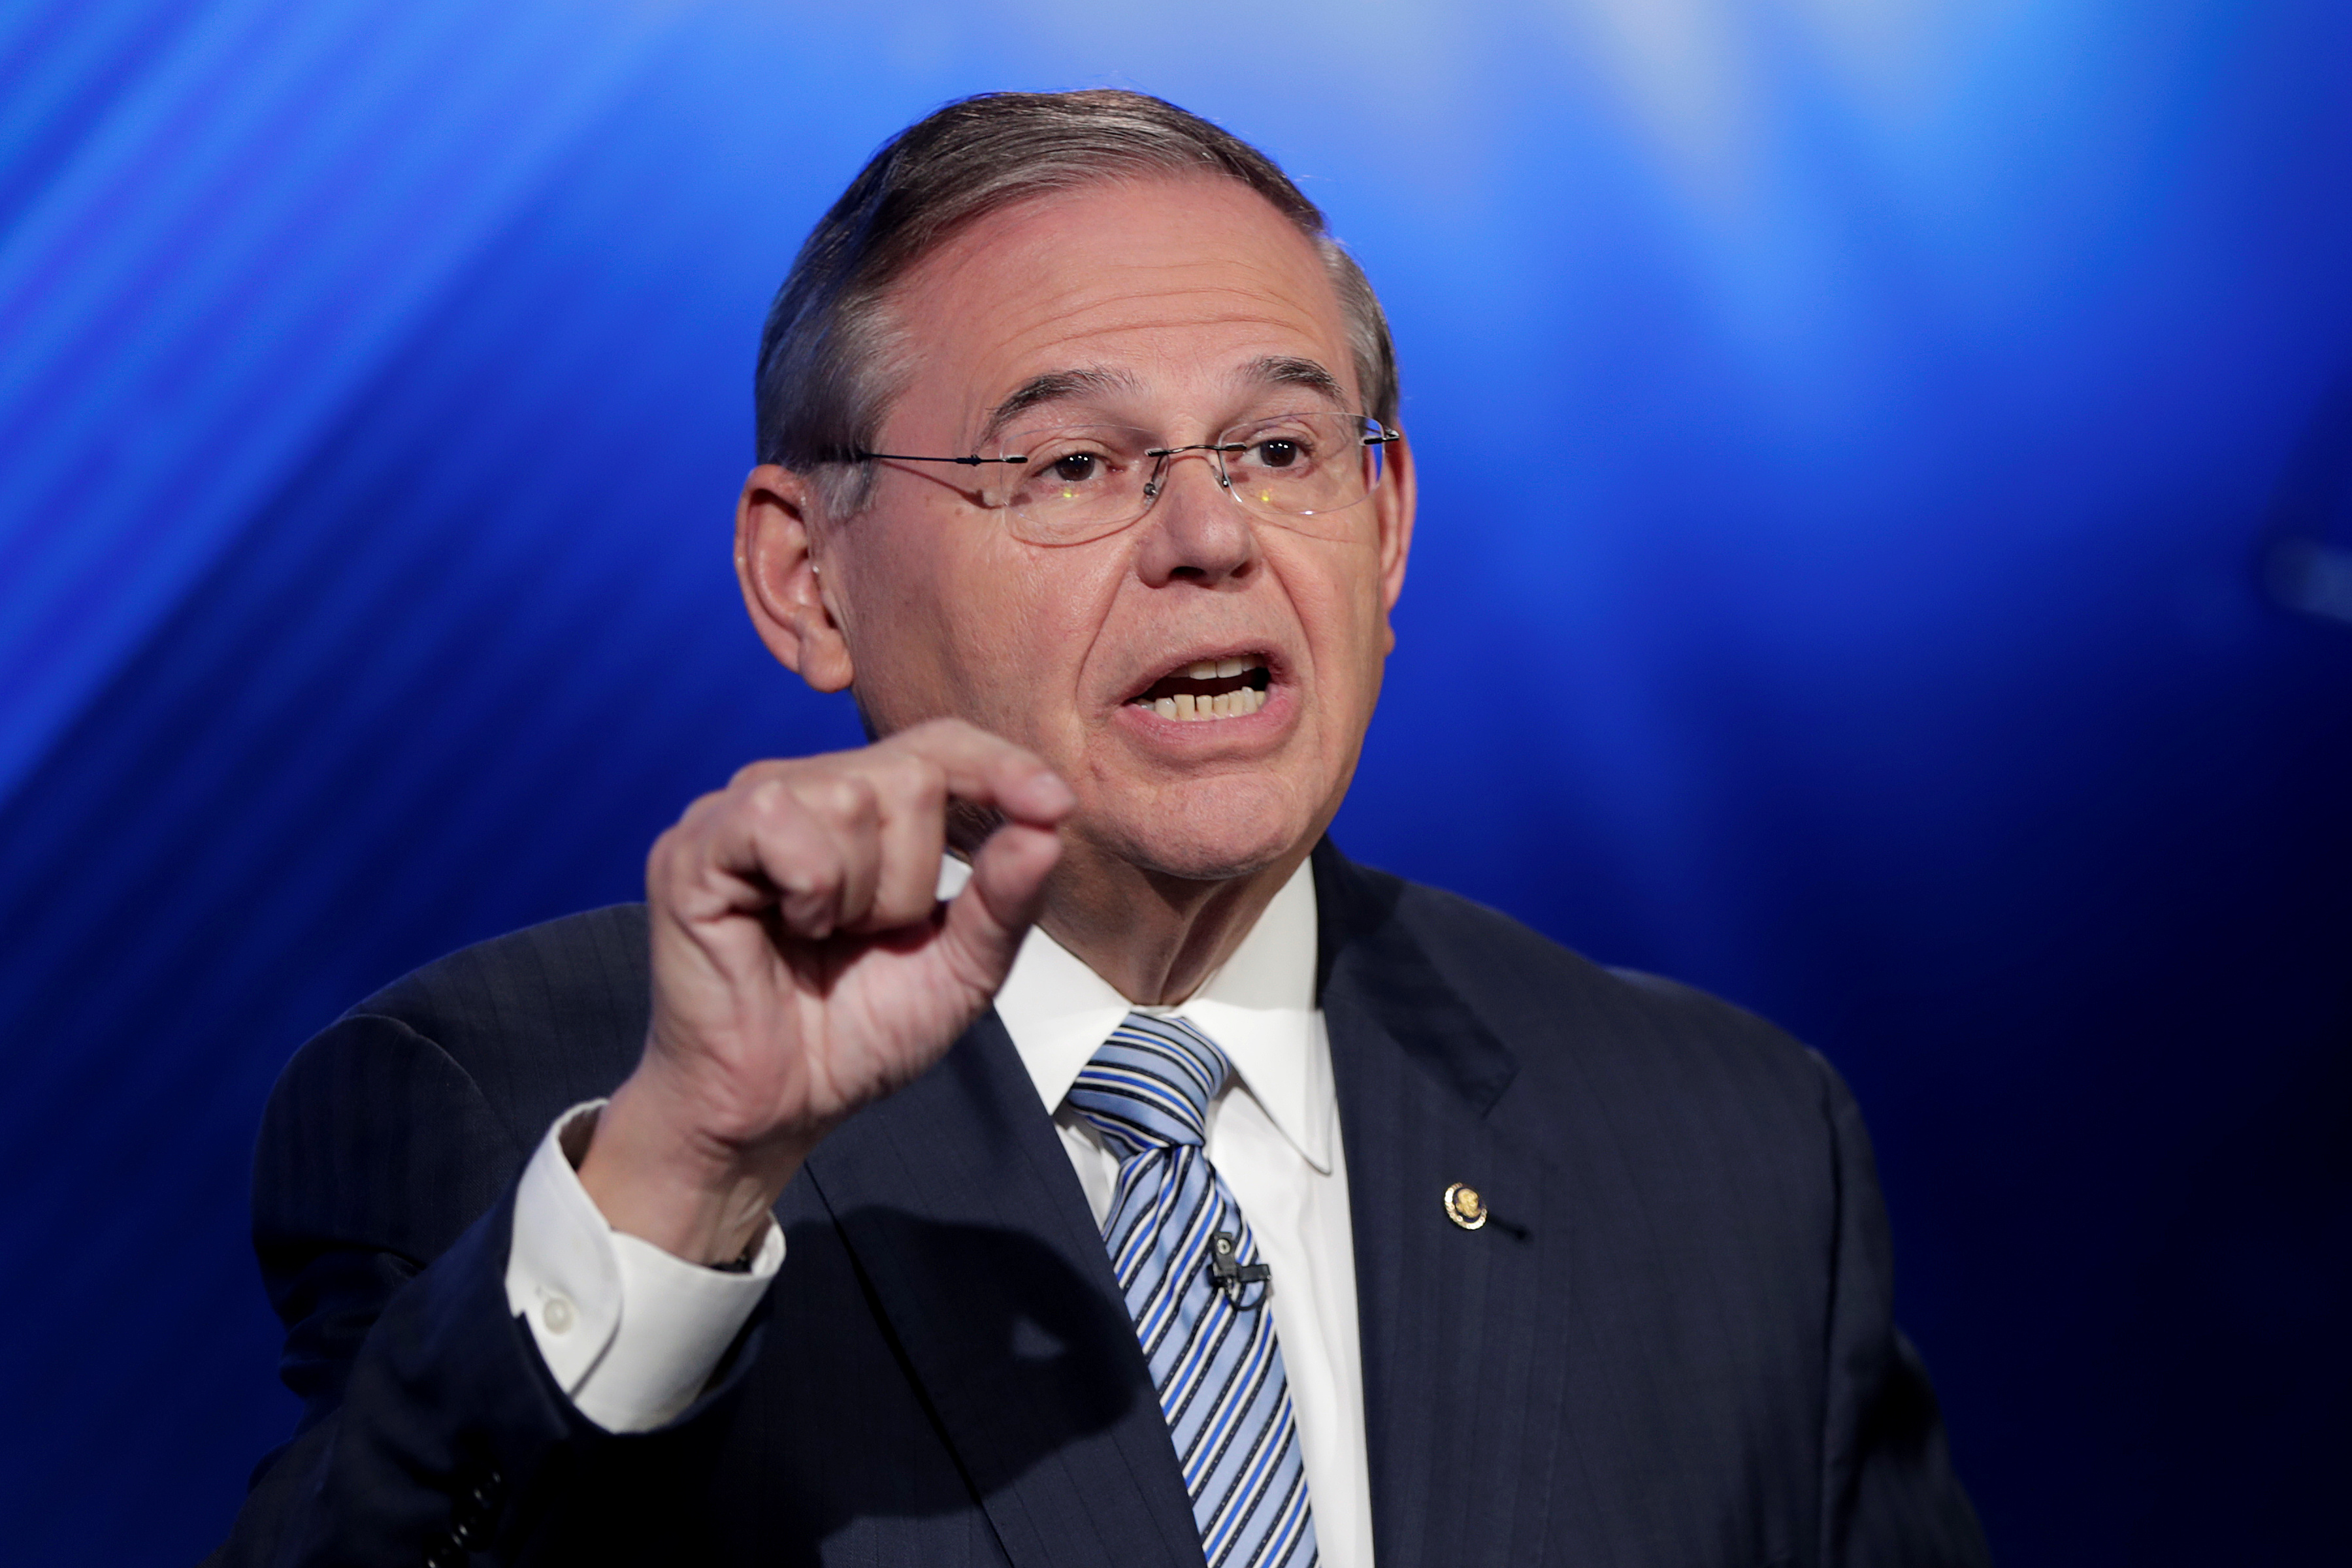 New Jersey Senator Bob Menendez, the Democrat candidate for the U.S. Senate race in New Jersey, speaks during a debate with Bob Hugin, the Republican candidate, in Newark, New Jersey, U.S., October 24, 2018. Julio Cortez/Pool via Reuters - RC1AAA1E0A70